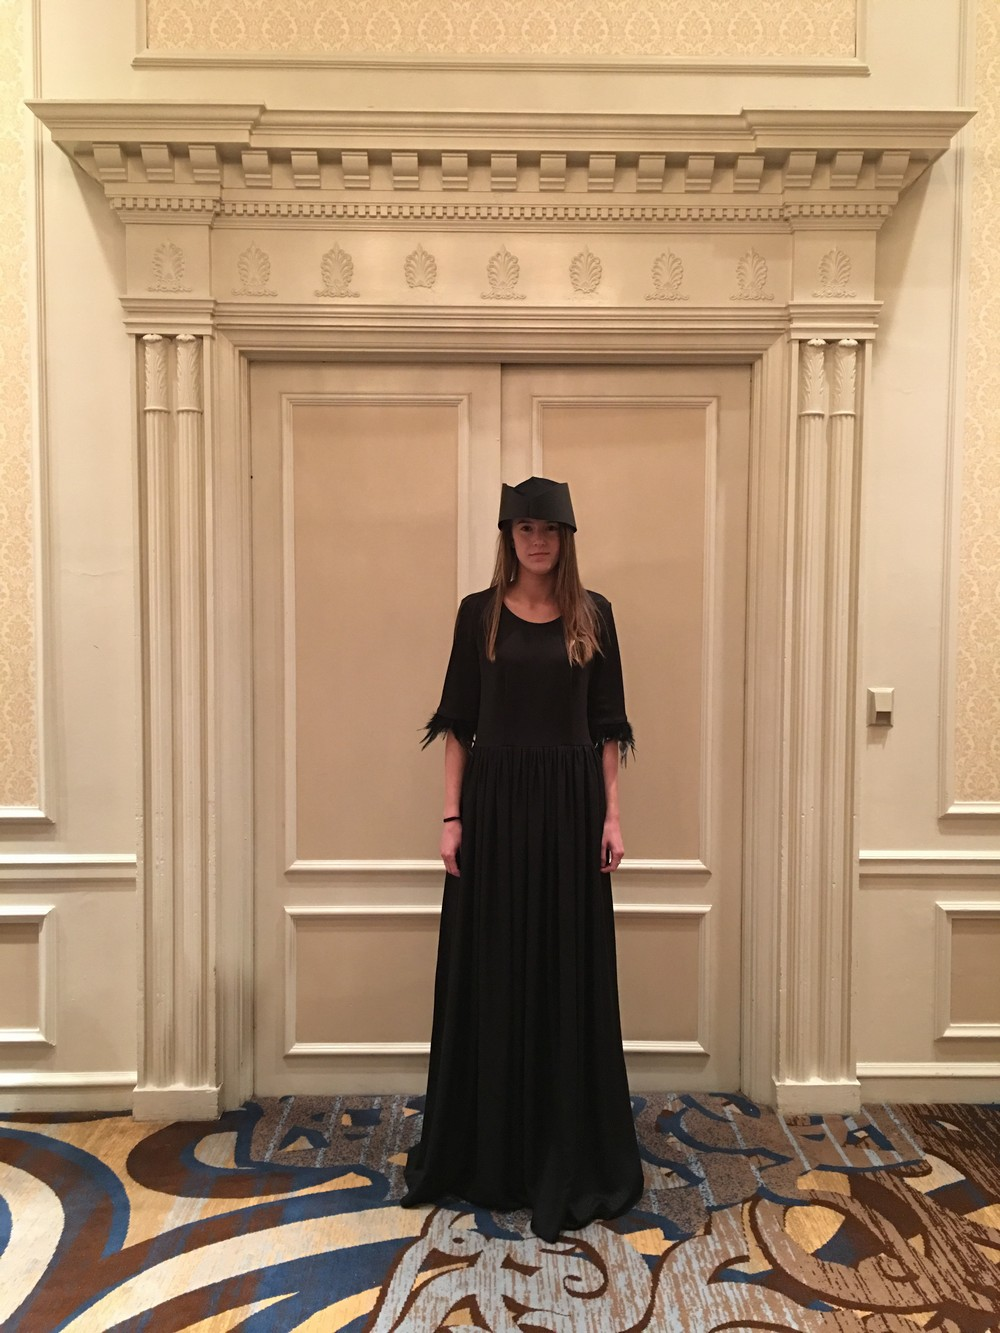 Laura Daili Vilnius  2016 fw collection during Chicago Fashion Week at The Drake Hotel suported by Monique Monique (3)